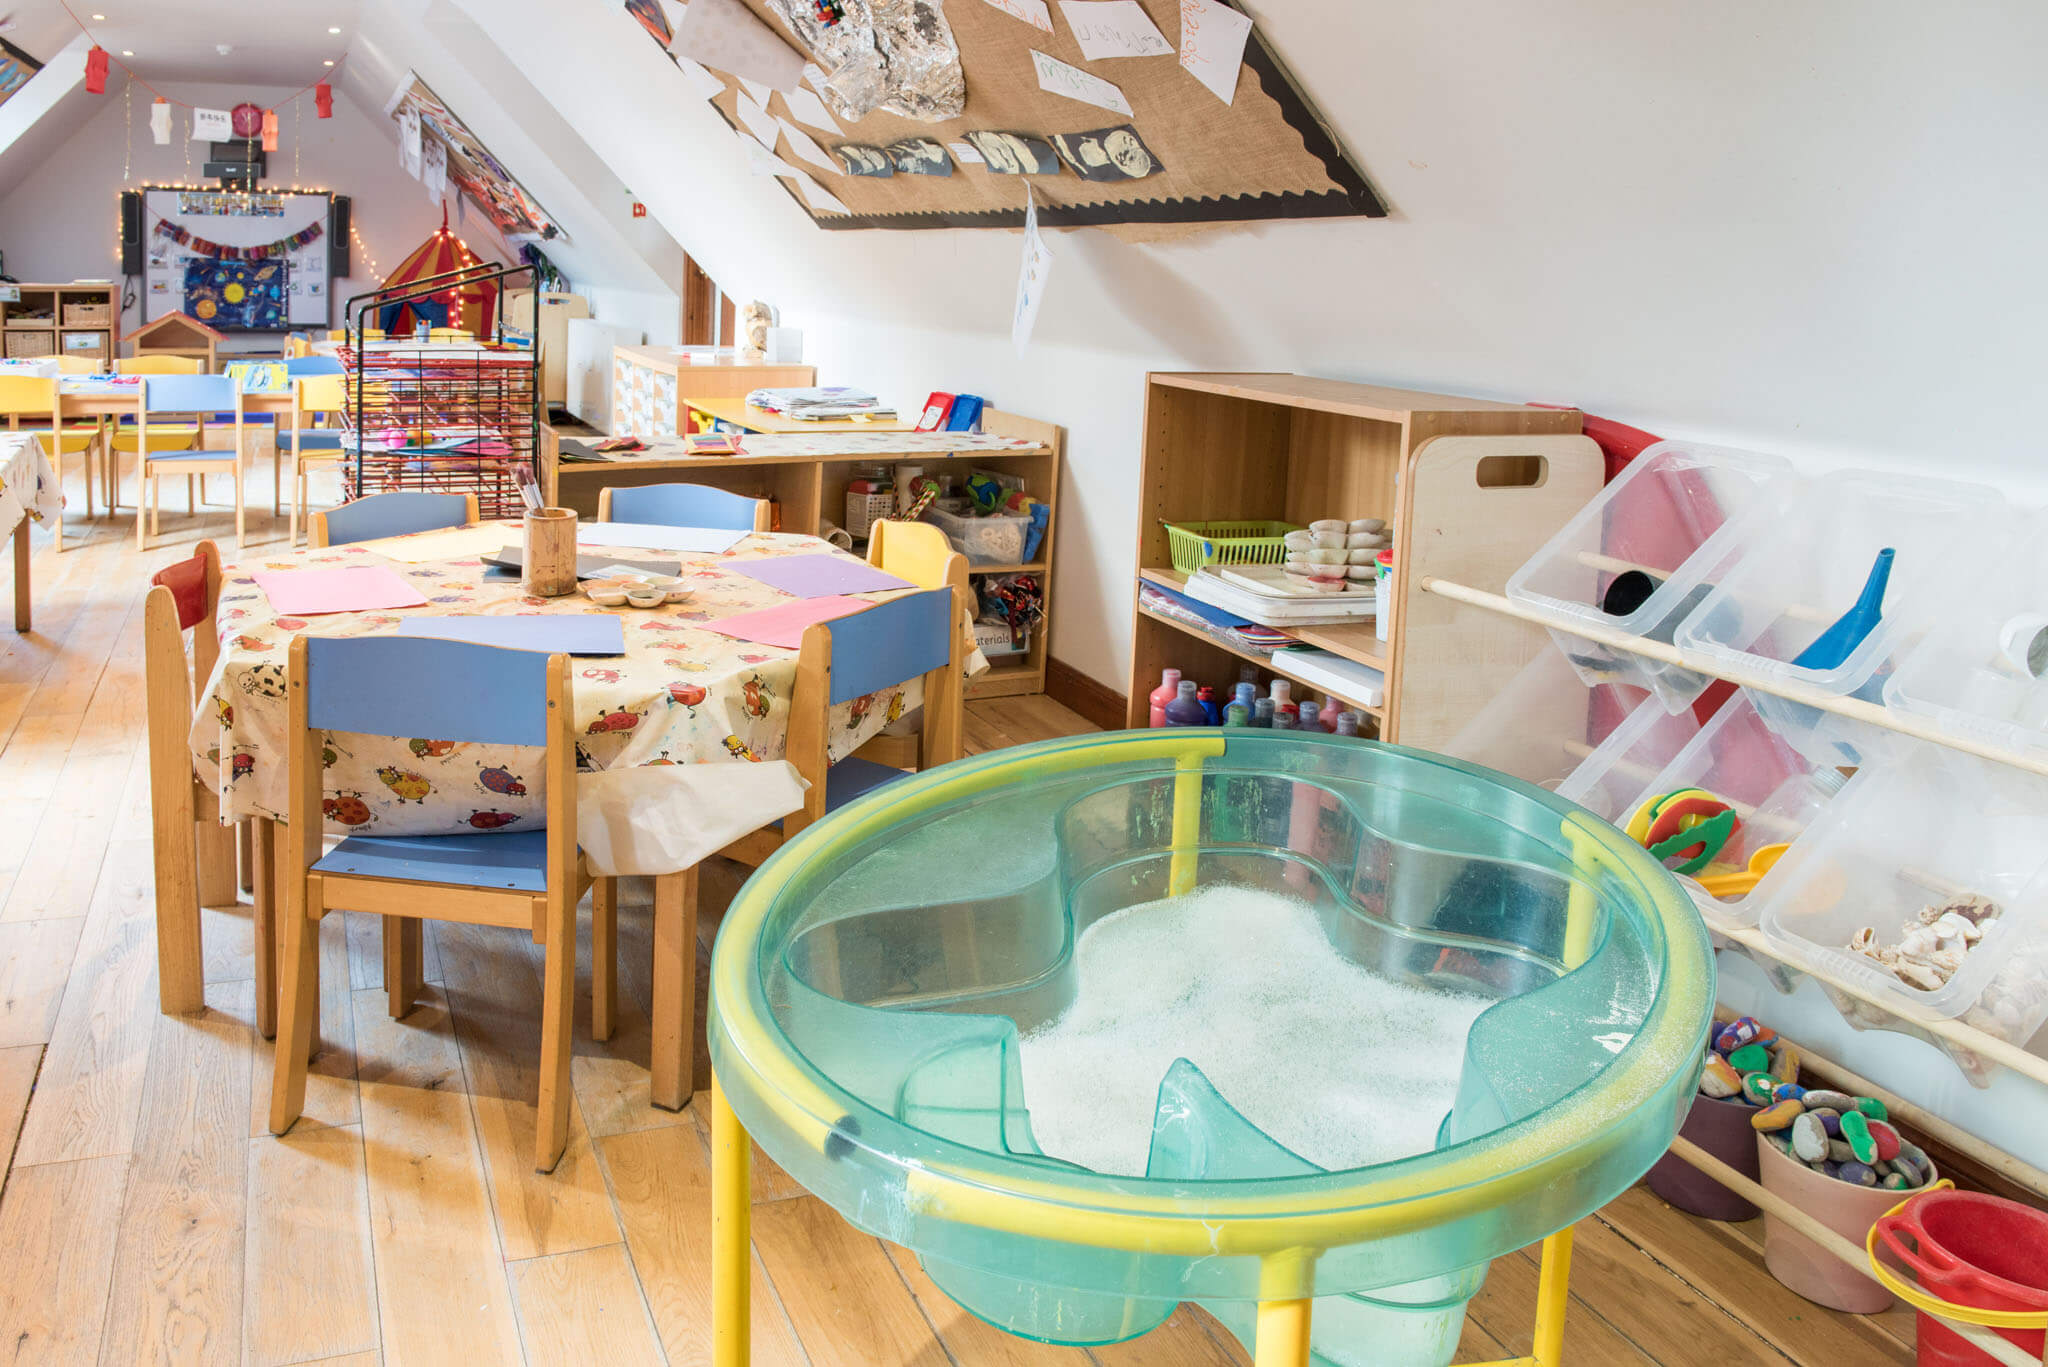 Celtic Cross Nursery Aberdeen Playrooms